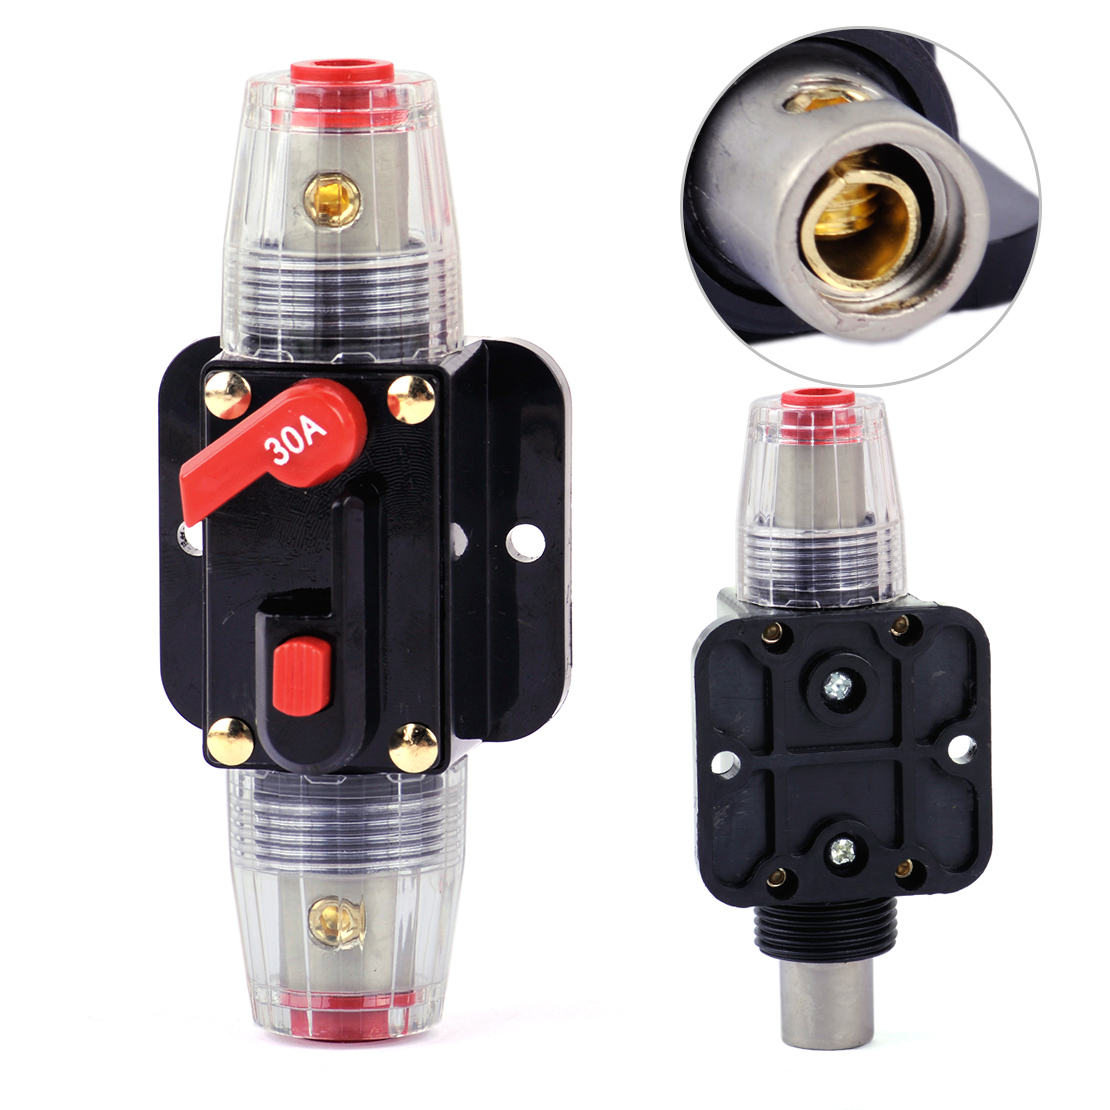 12v 250a Car Amplifier Current Circuit Breaker Inline Fuse Protector Audio Holder